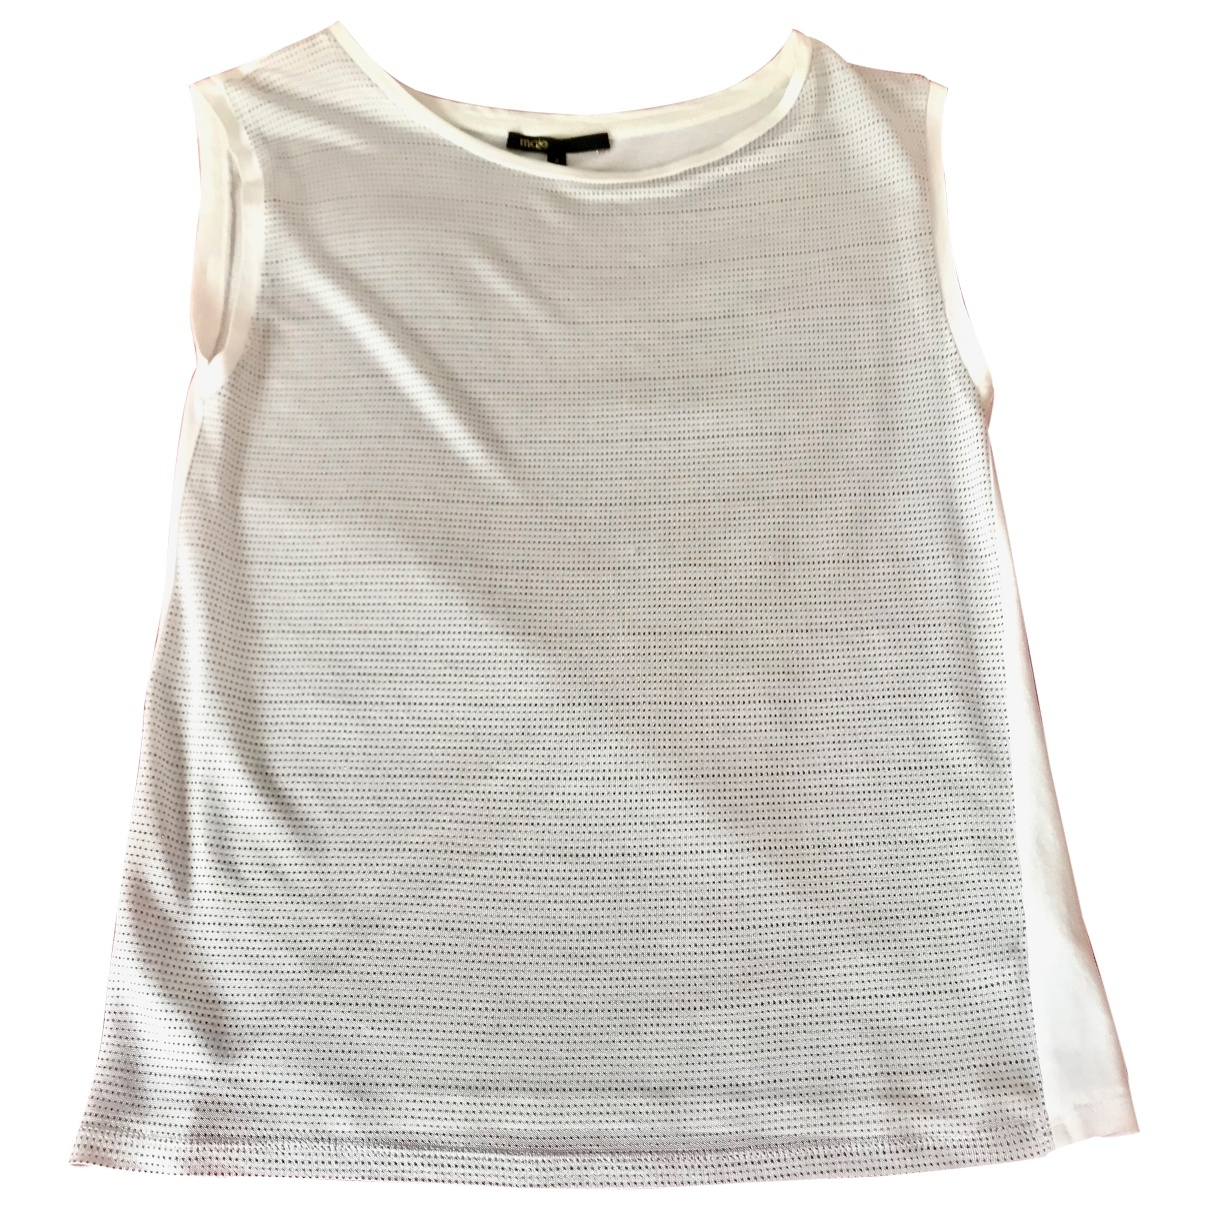 Maje \N White  top for Women 2 0-5